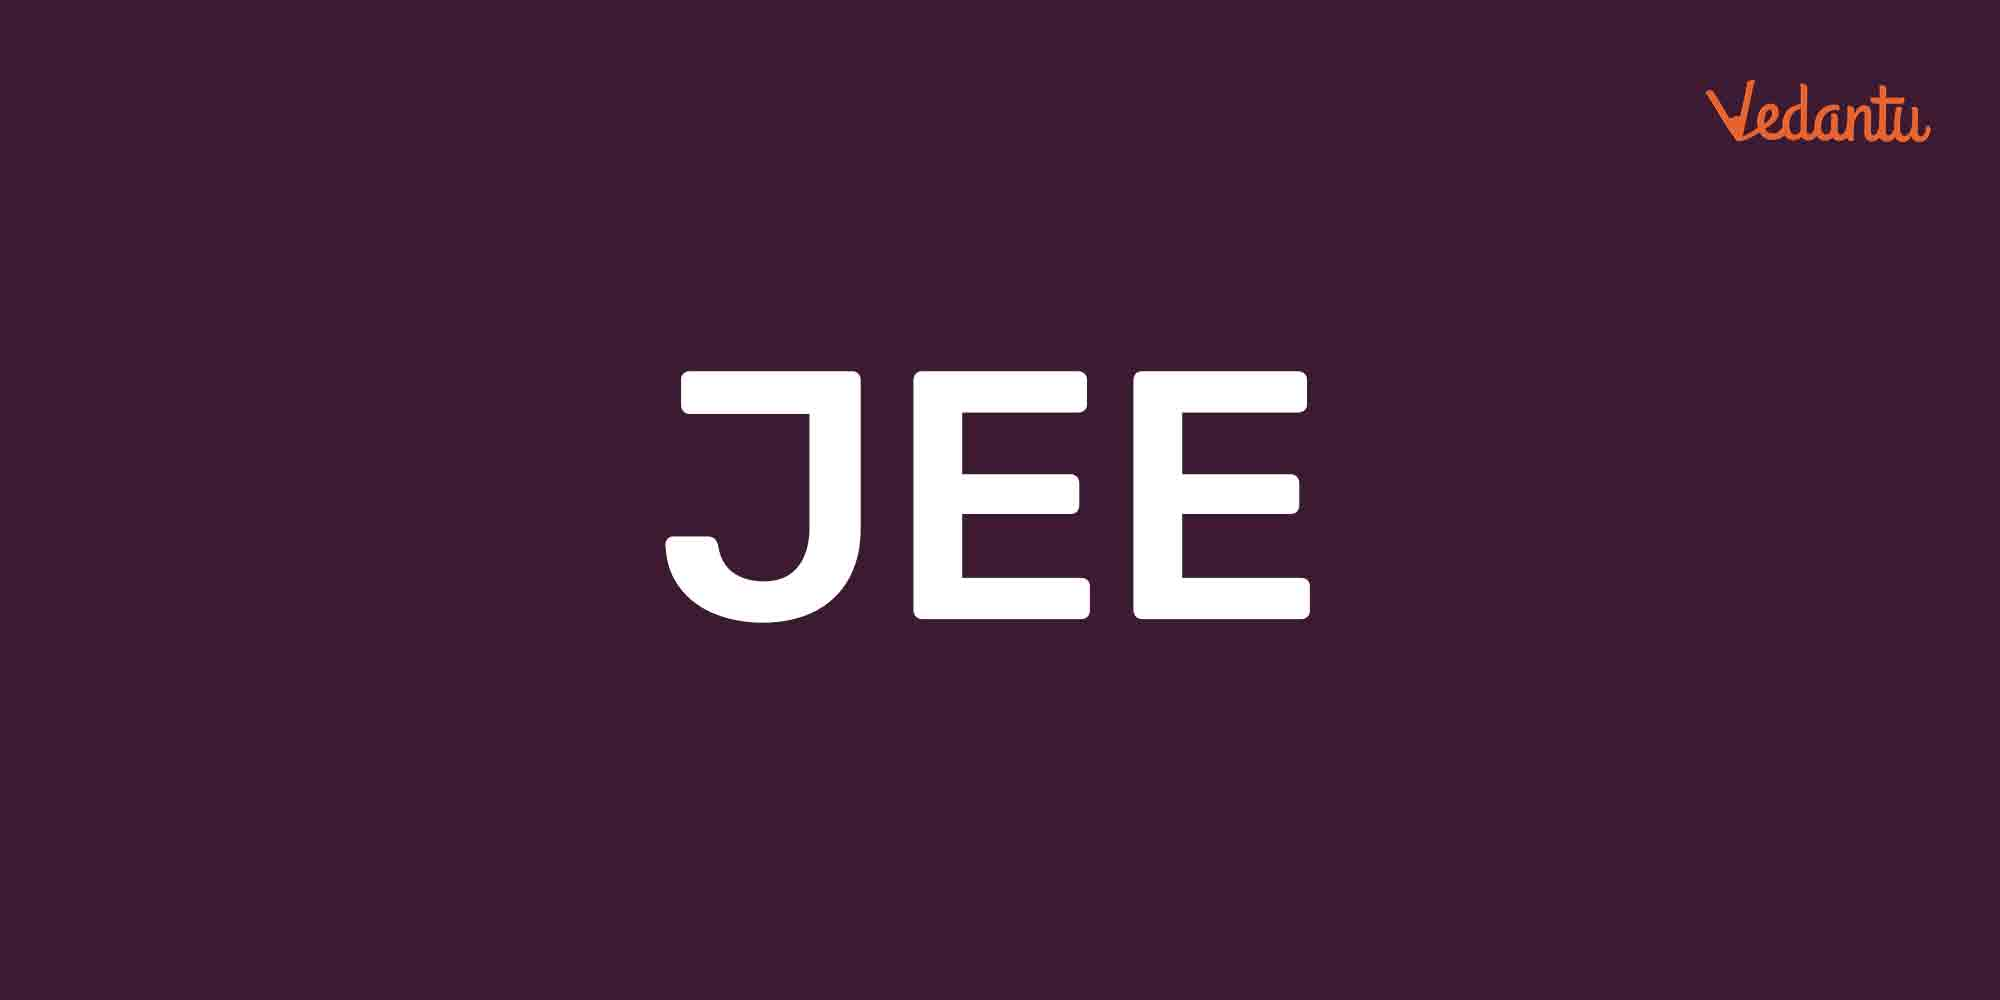 Is There a Big Rank Difference between the JEE Advanced and JEE Mains of a Particular Student?